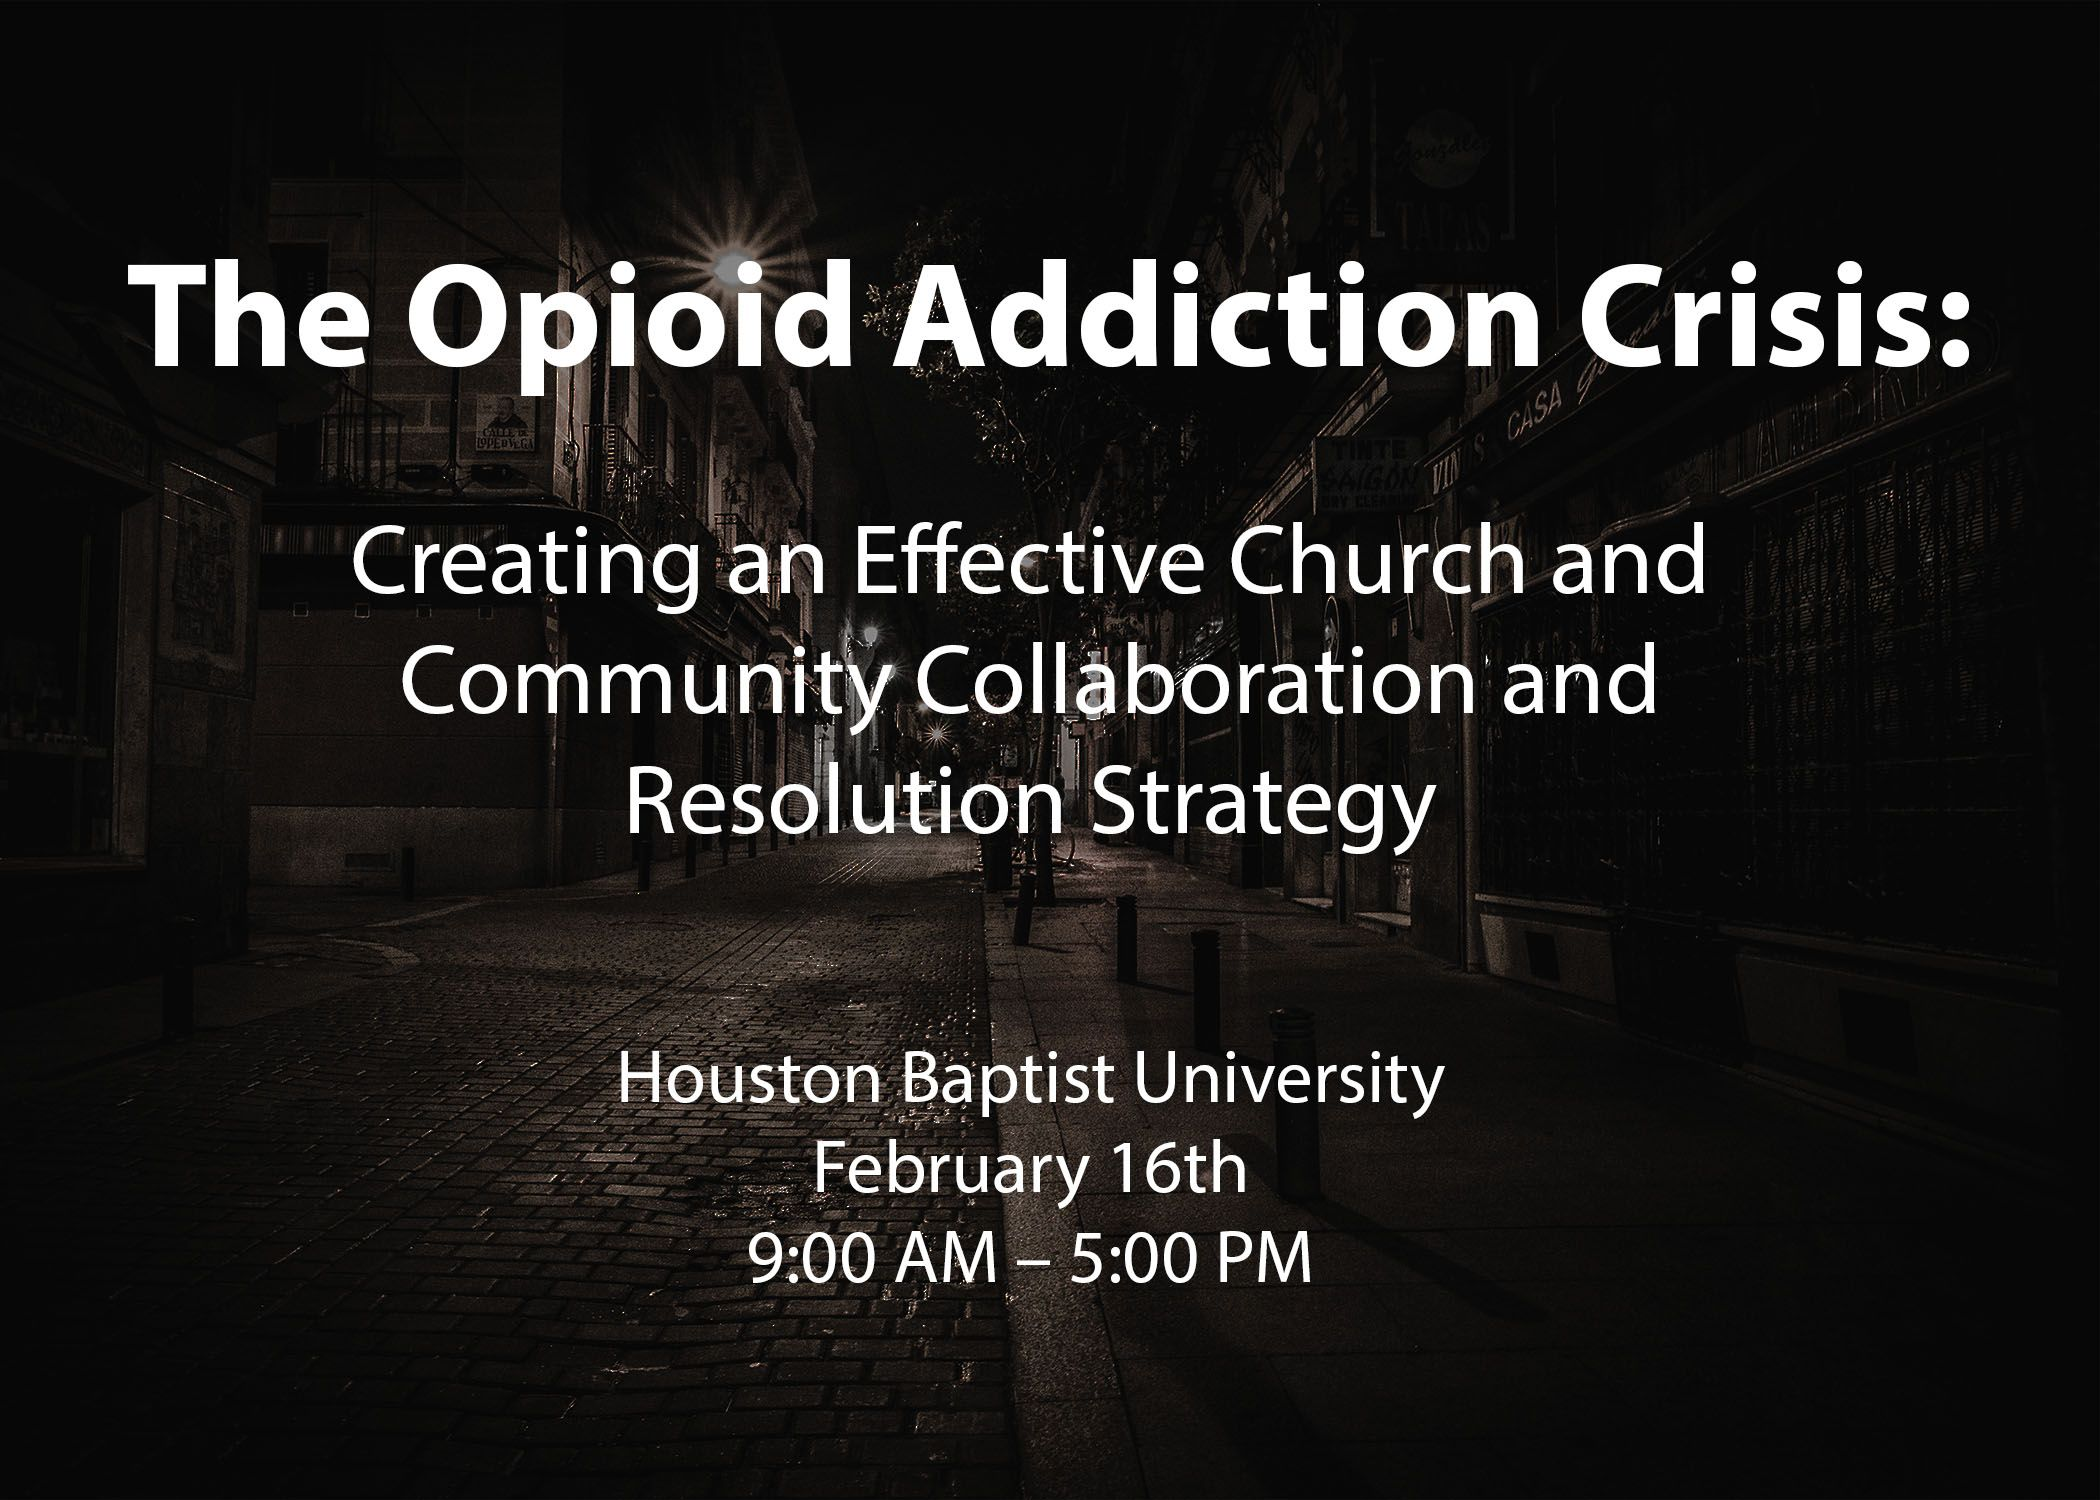 The Opioid Addiction Crisis: Creating an Effective Church and Community Collaboration and Resolution Strategy